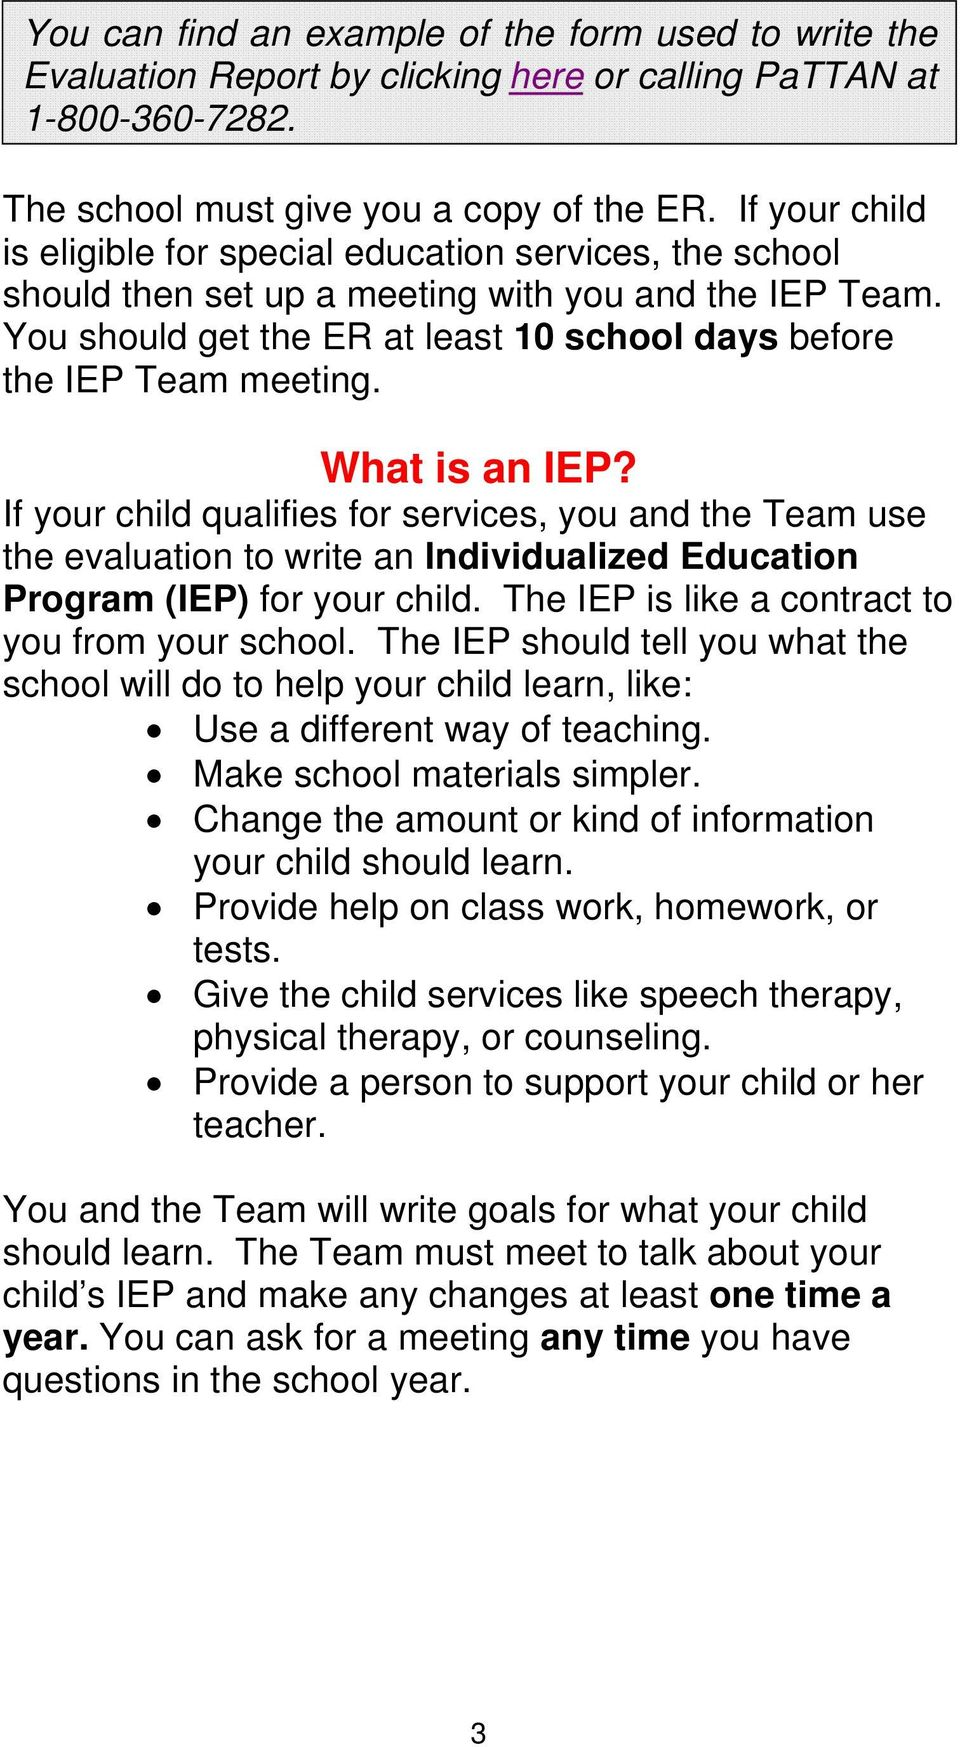 What is an IEP? If your child qualifies for services, you and the Team use the evaluation to write an Individualized Education Program (IEP) for your child.